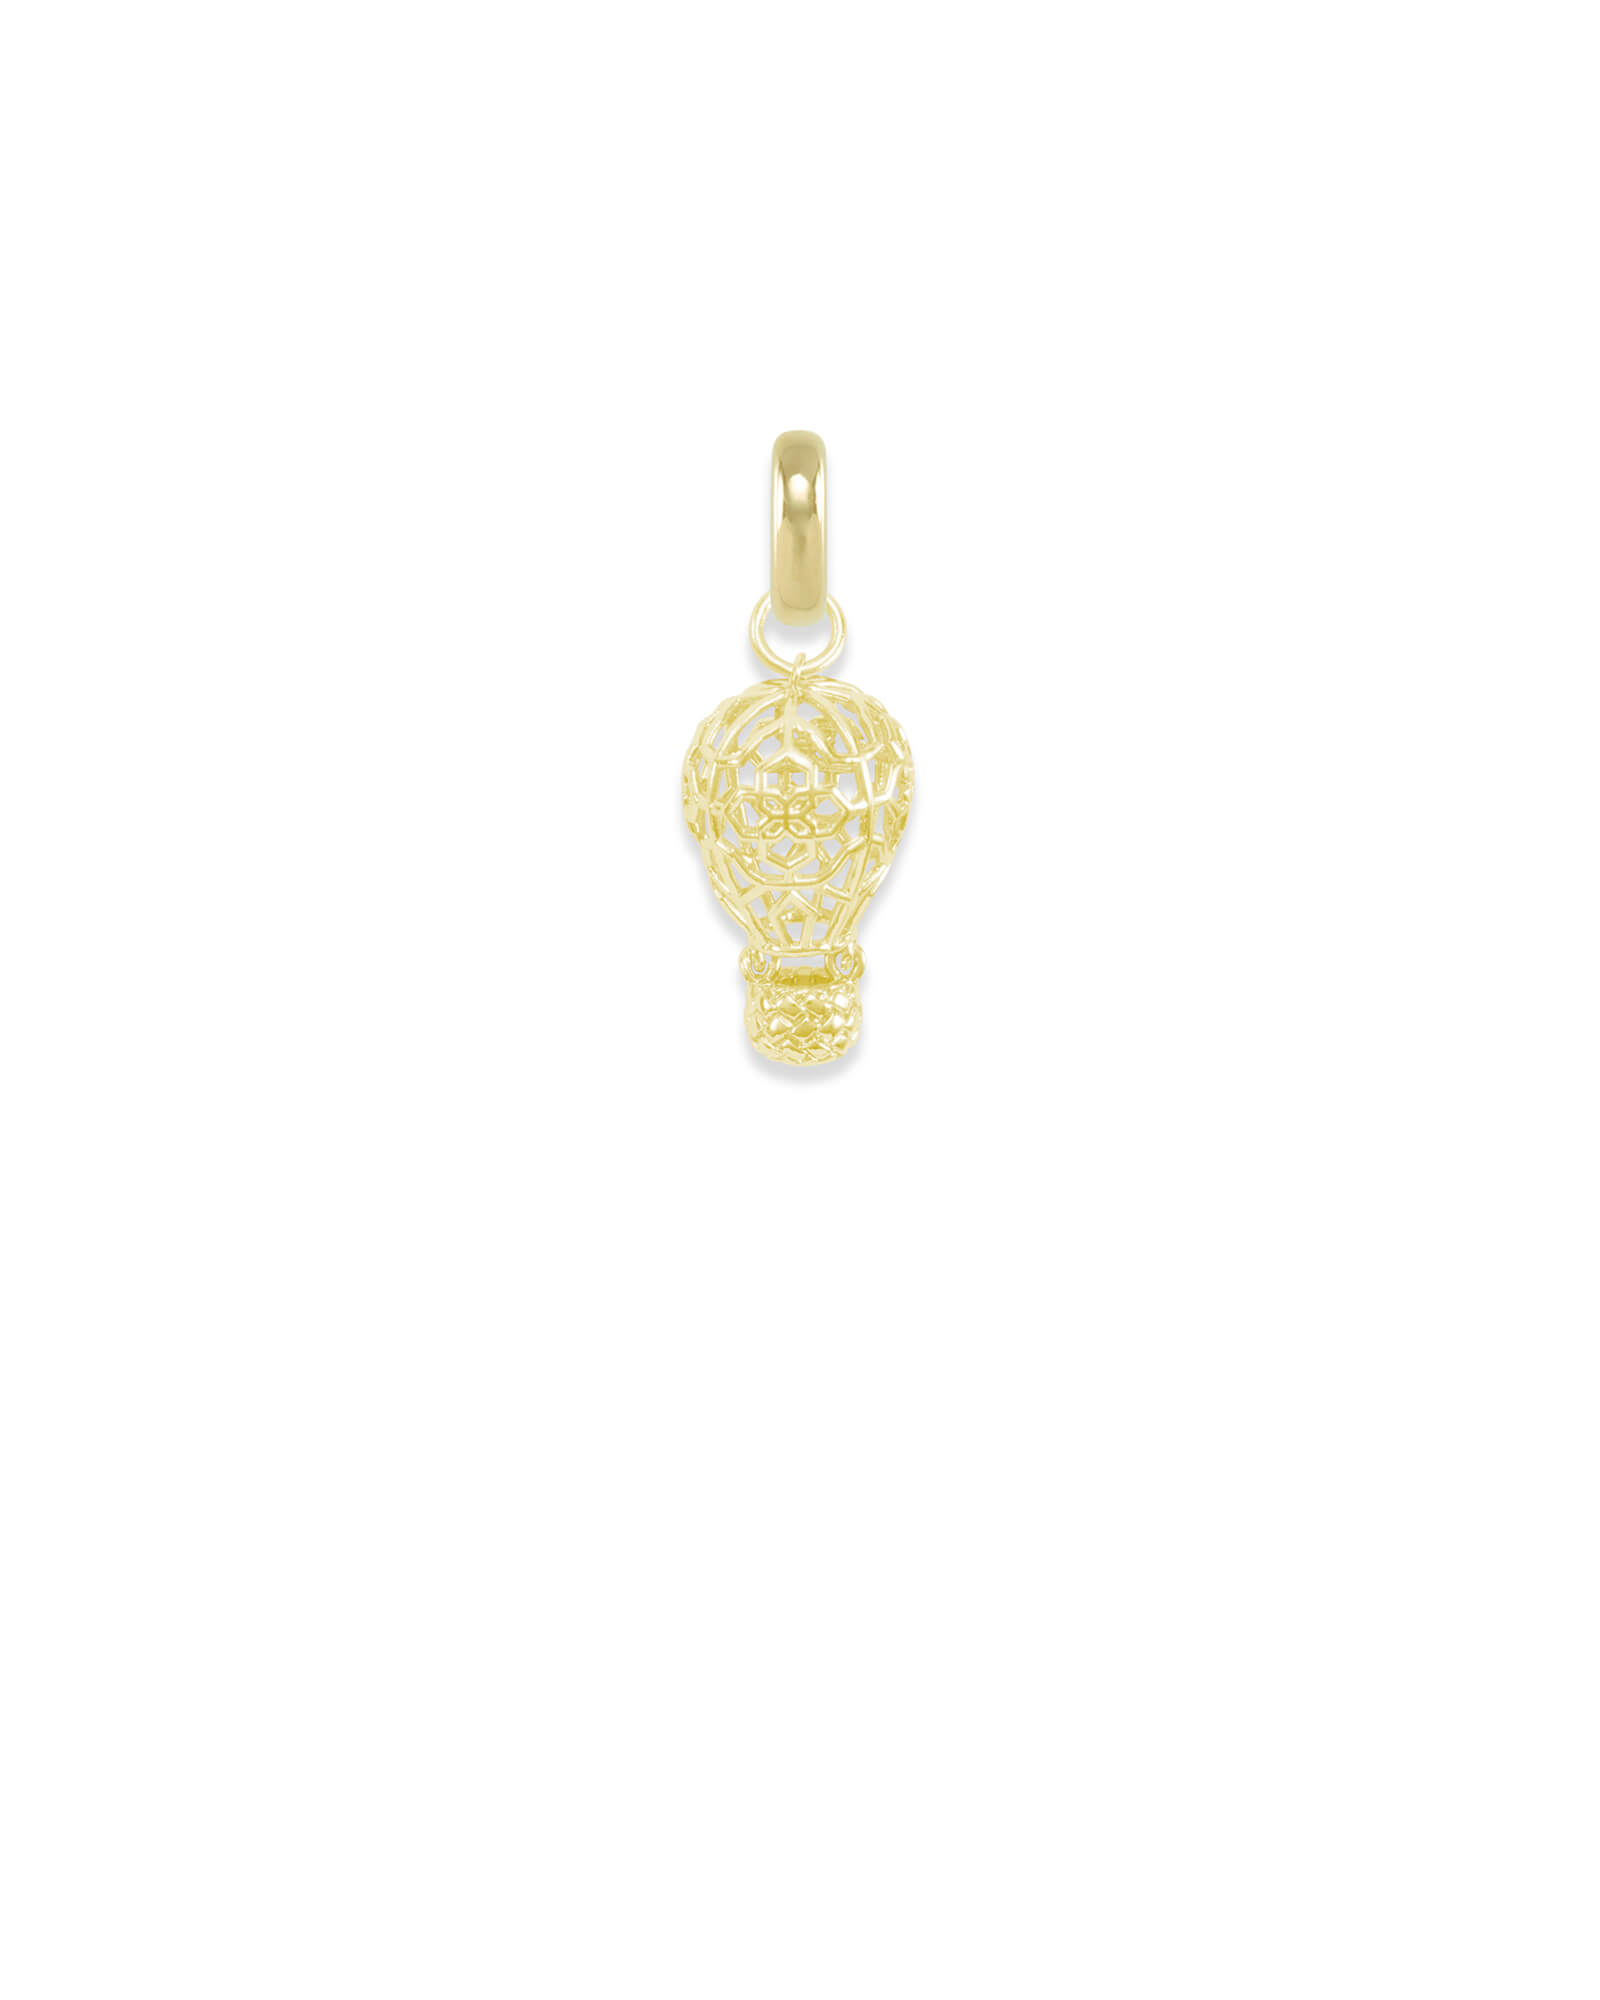 New Mexico Hot Air Balloon Charm in Gold